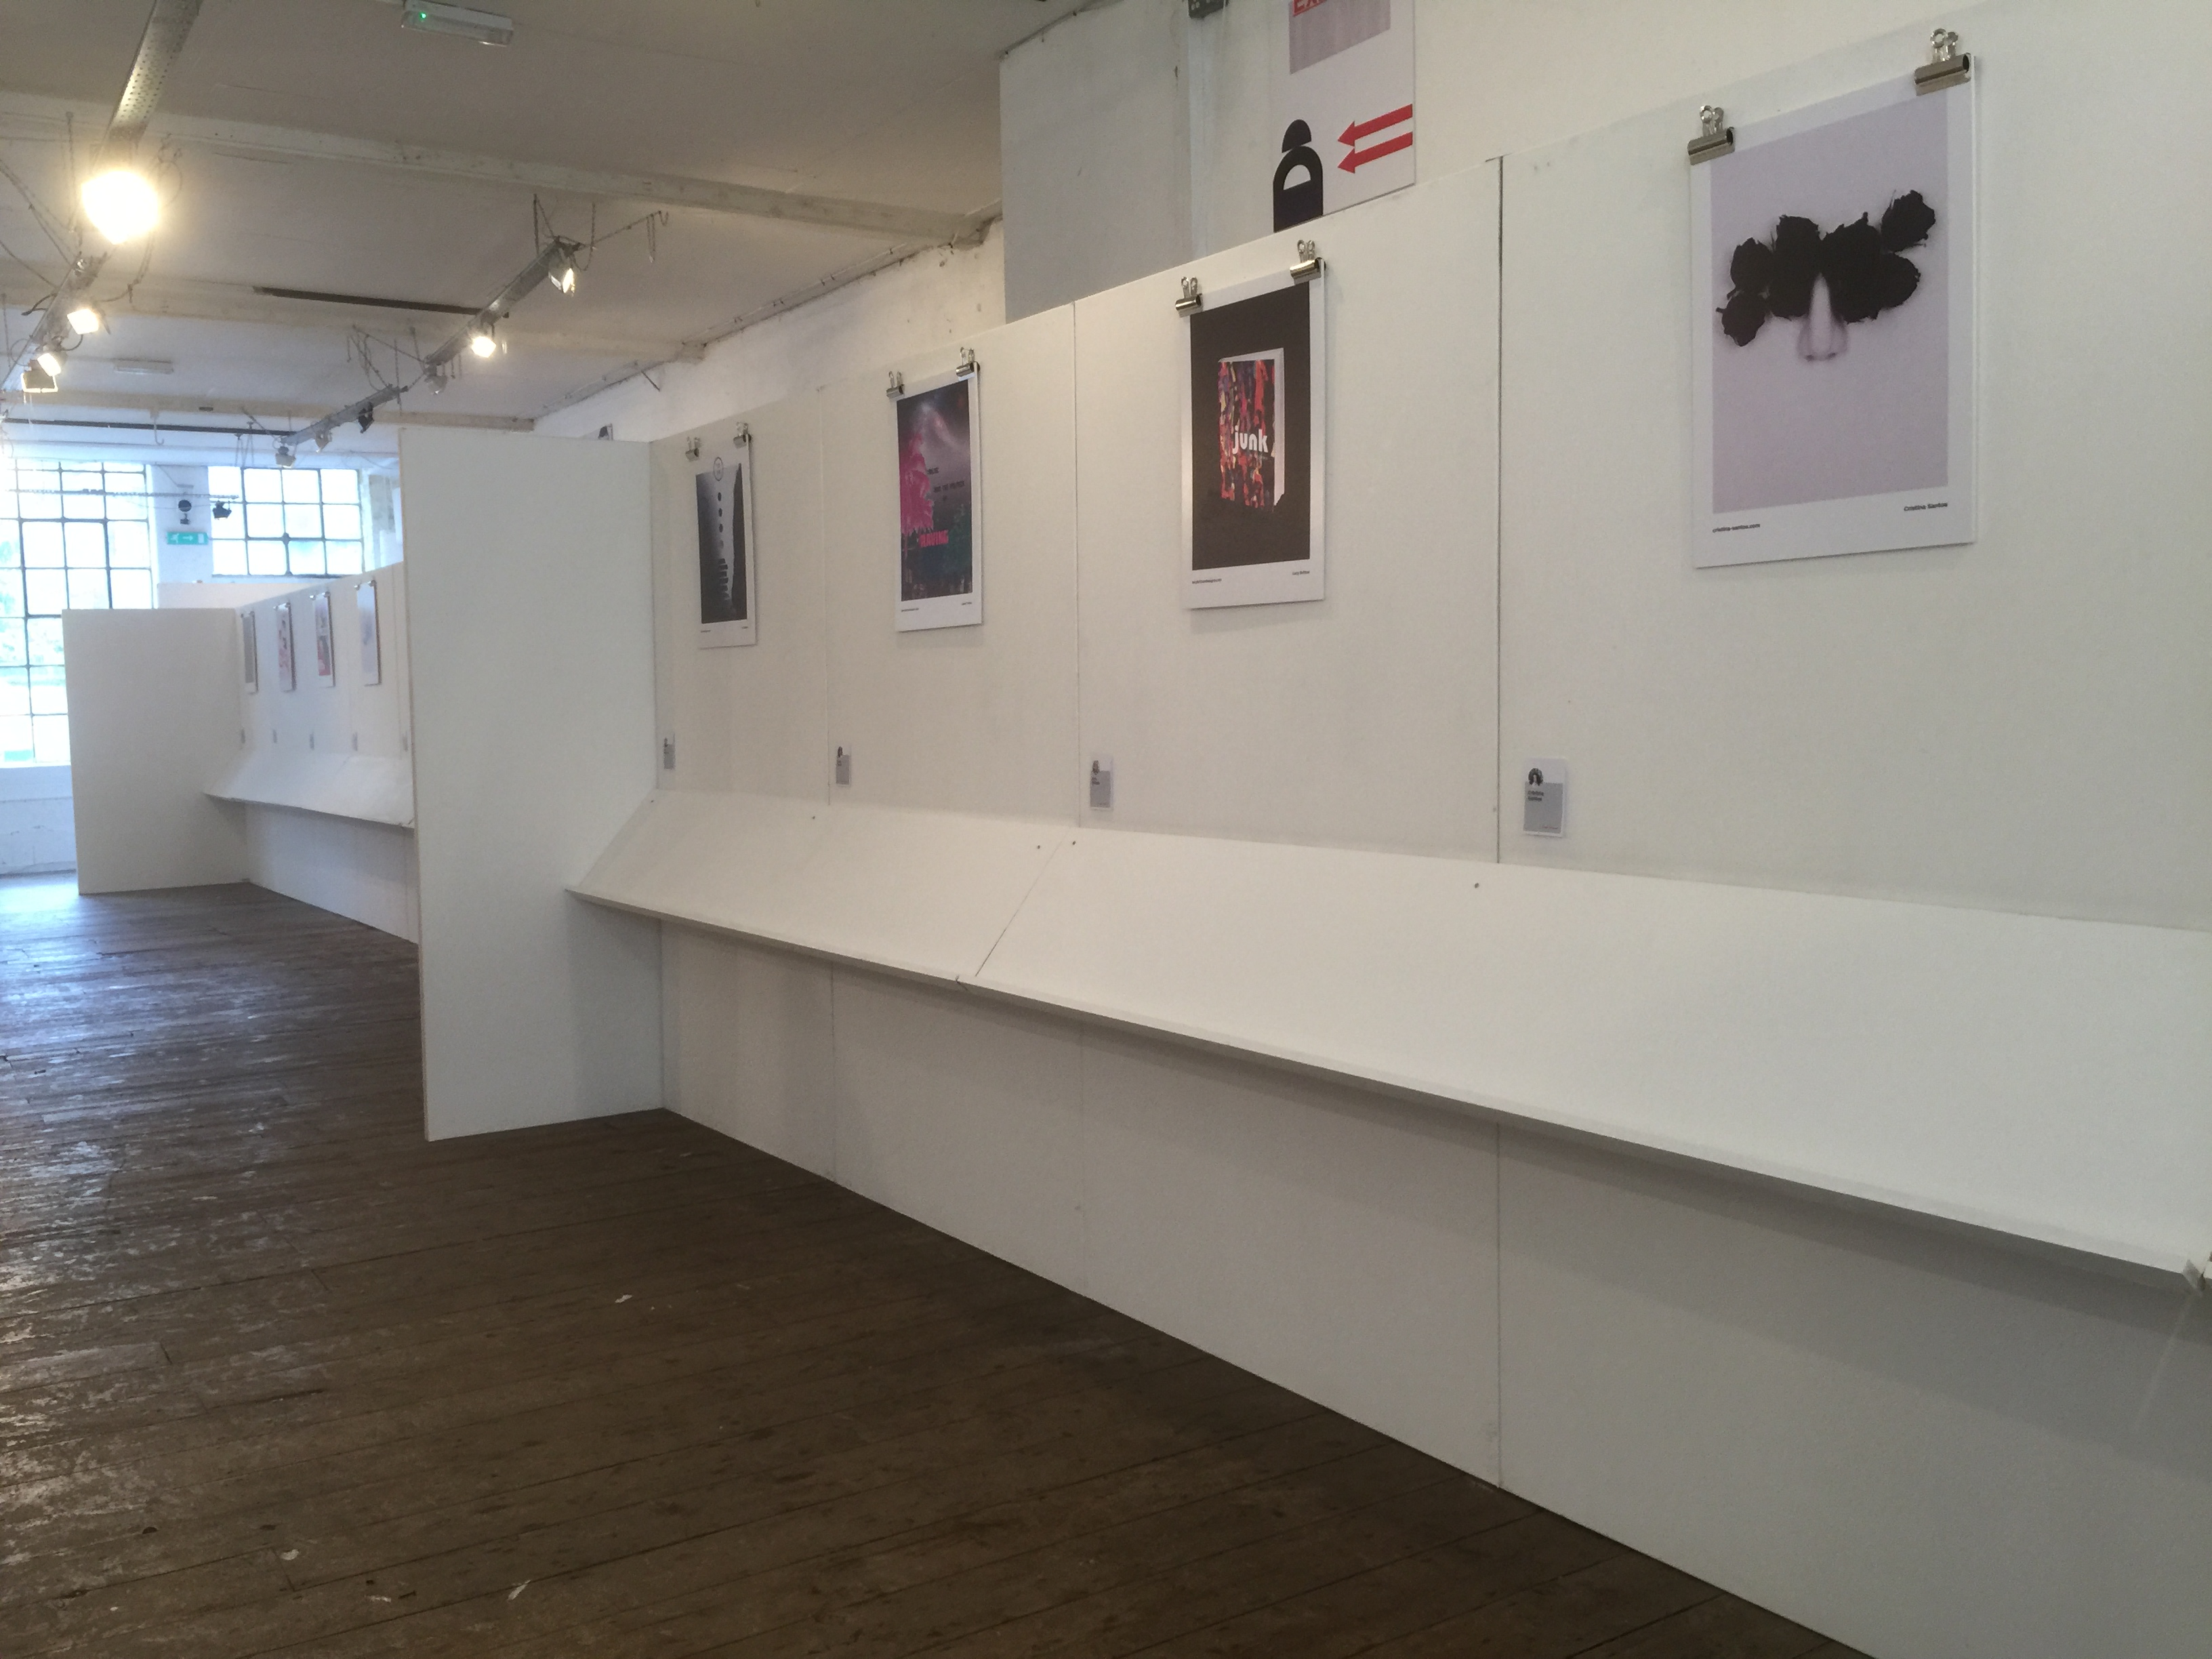 exhibition walling with shelves